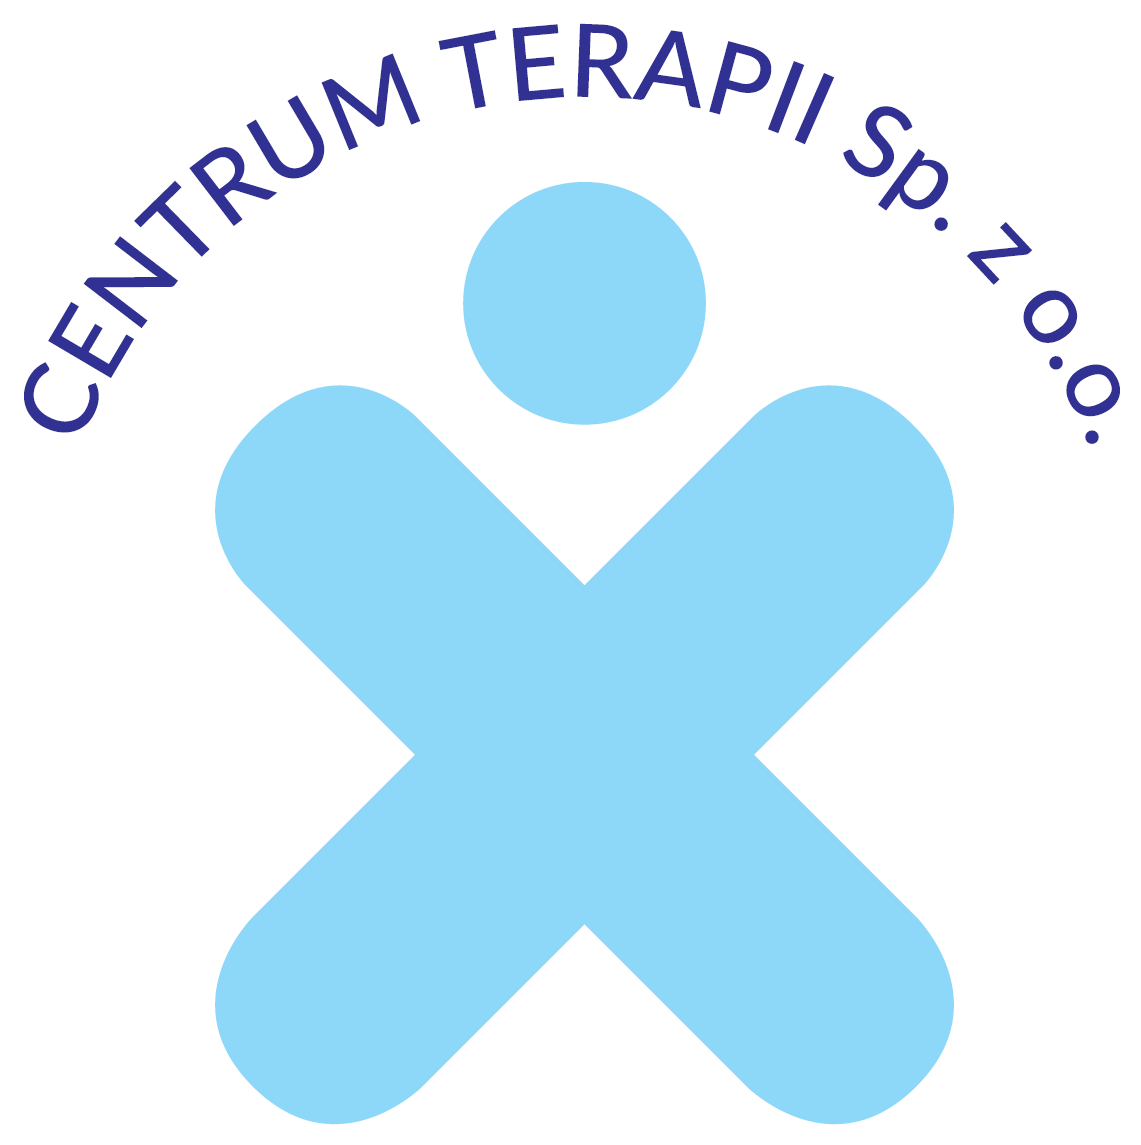 Centrum Terapii